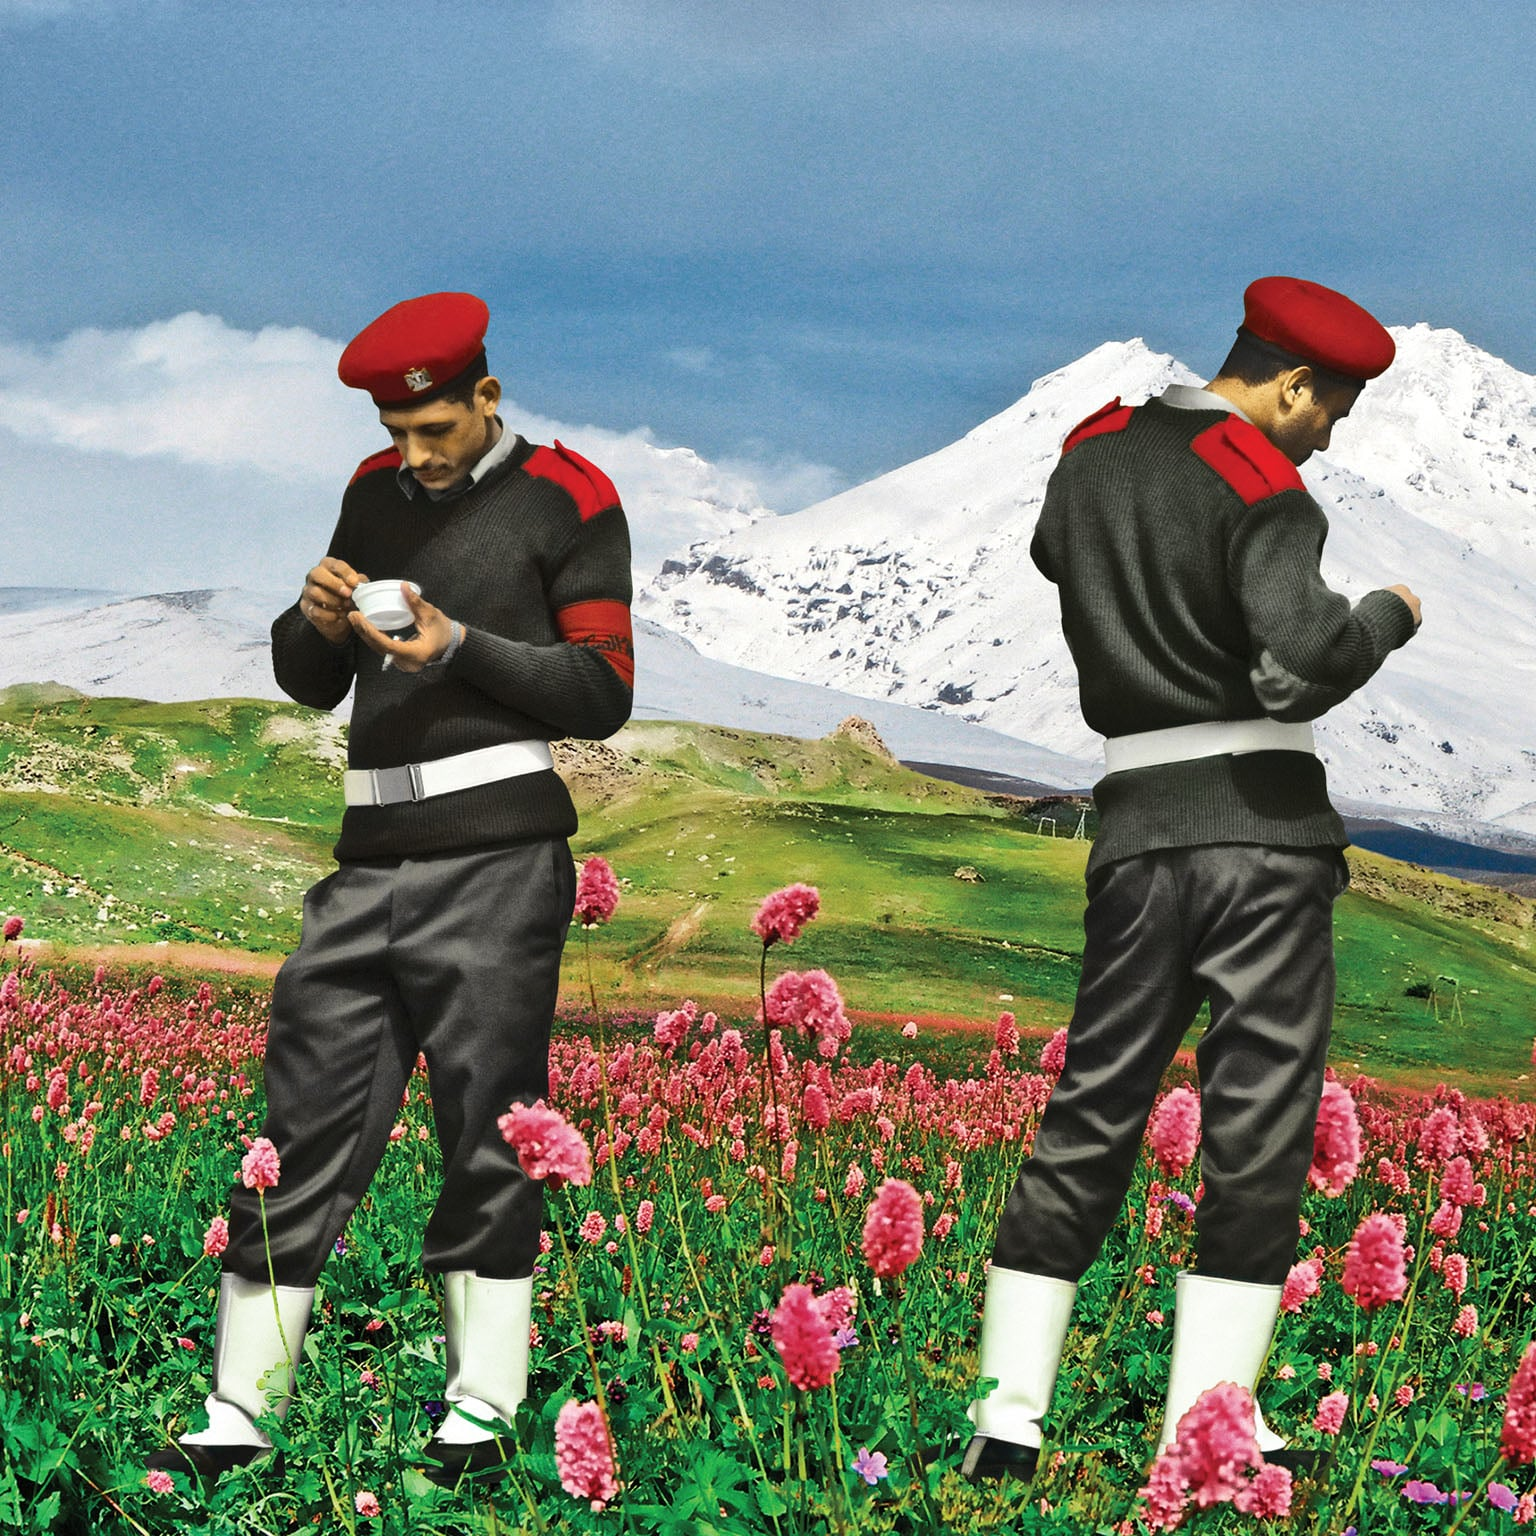 Photographs from the 'Upekkha' series (Art Fund Collection of Middle Eastern Photography)- 1) Armed Innocence II; 2) Spring (Sham el Nasseem); 3) The Break- Photographs from the 'Upekkha' series (Art Fund Collection of Middle Eastern P